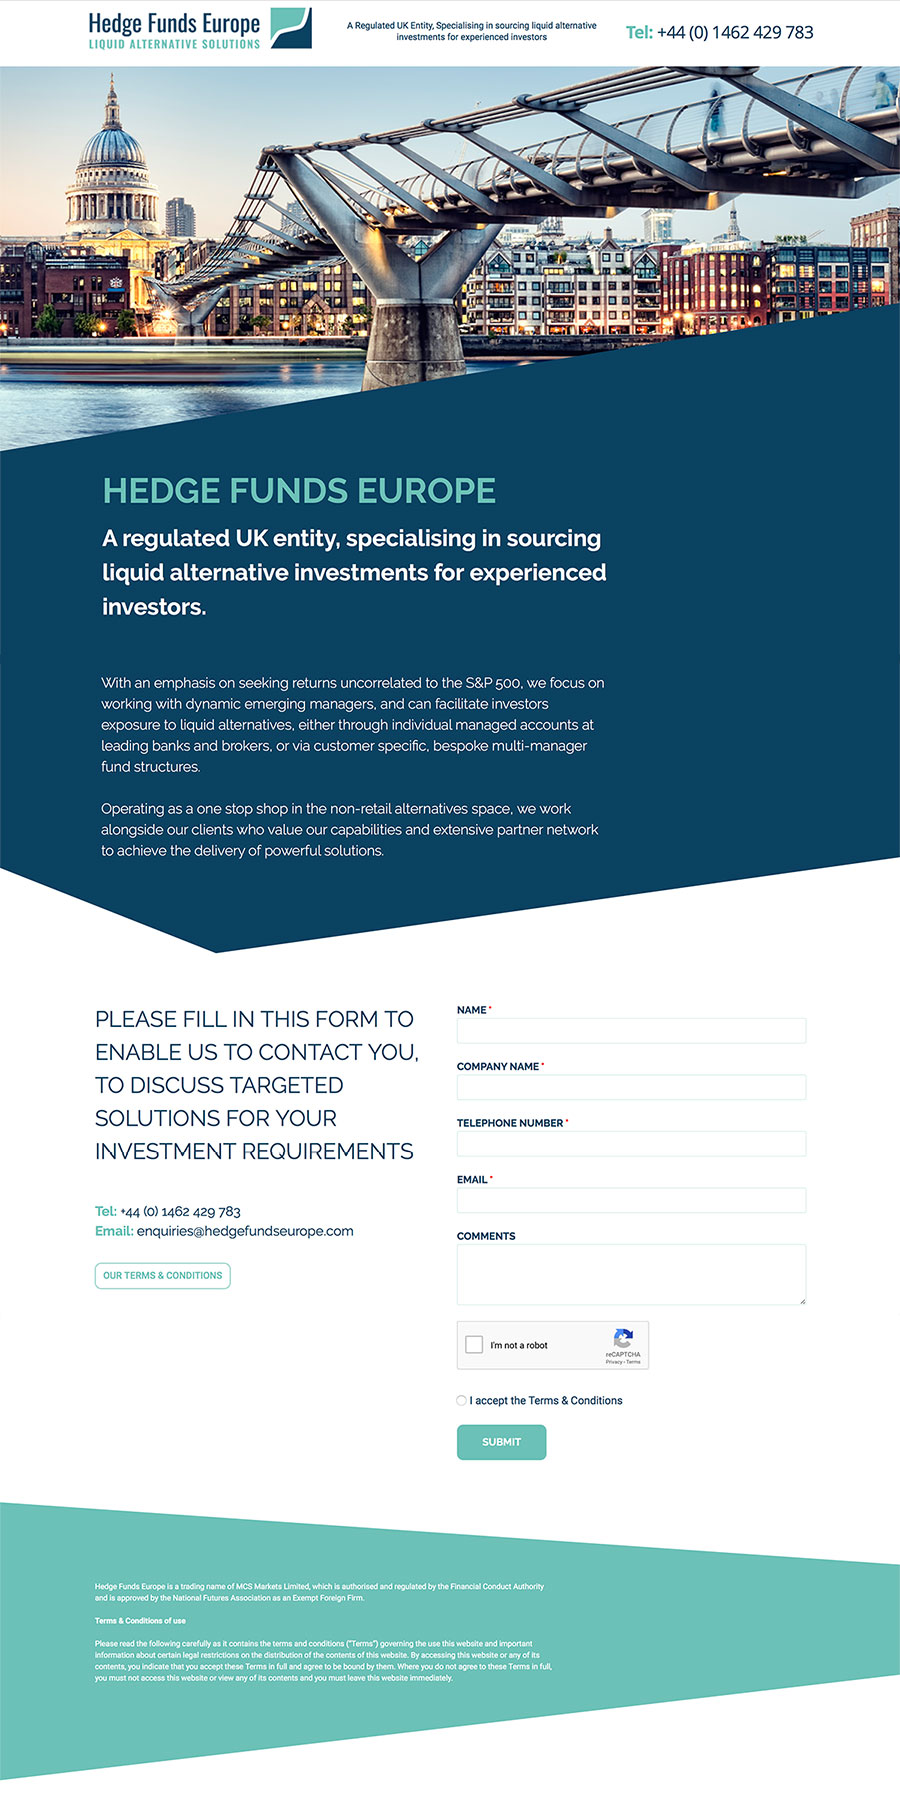 Hedge Funds Europe Website design layout